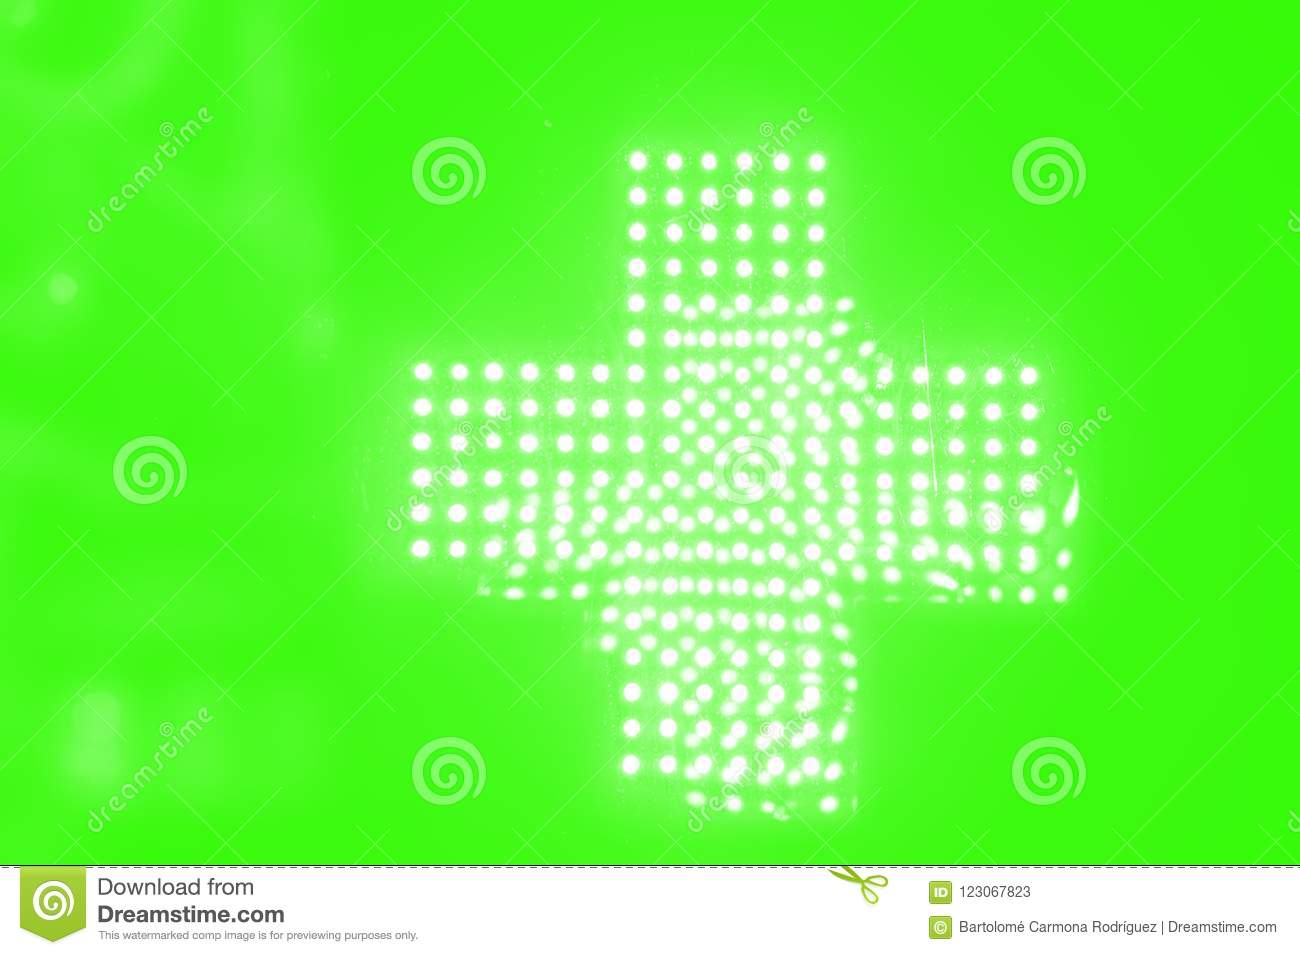 bec51f17f3ffb Luminous Made With Fluorescent Green Bright Neon Lights Stock Image ...